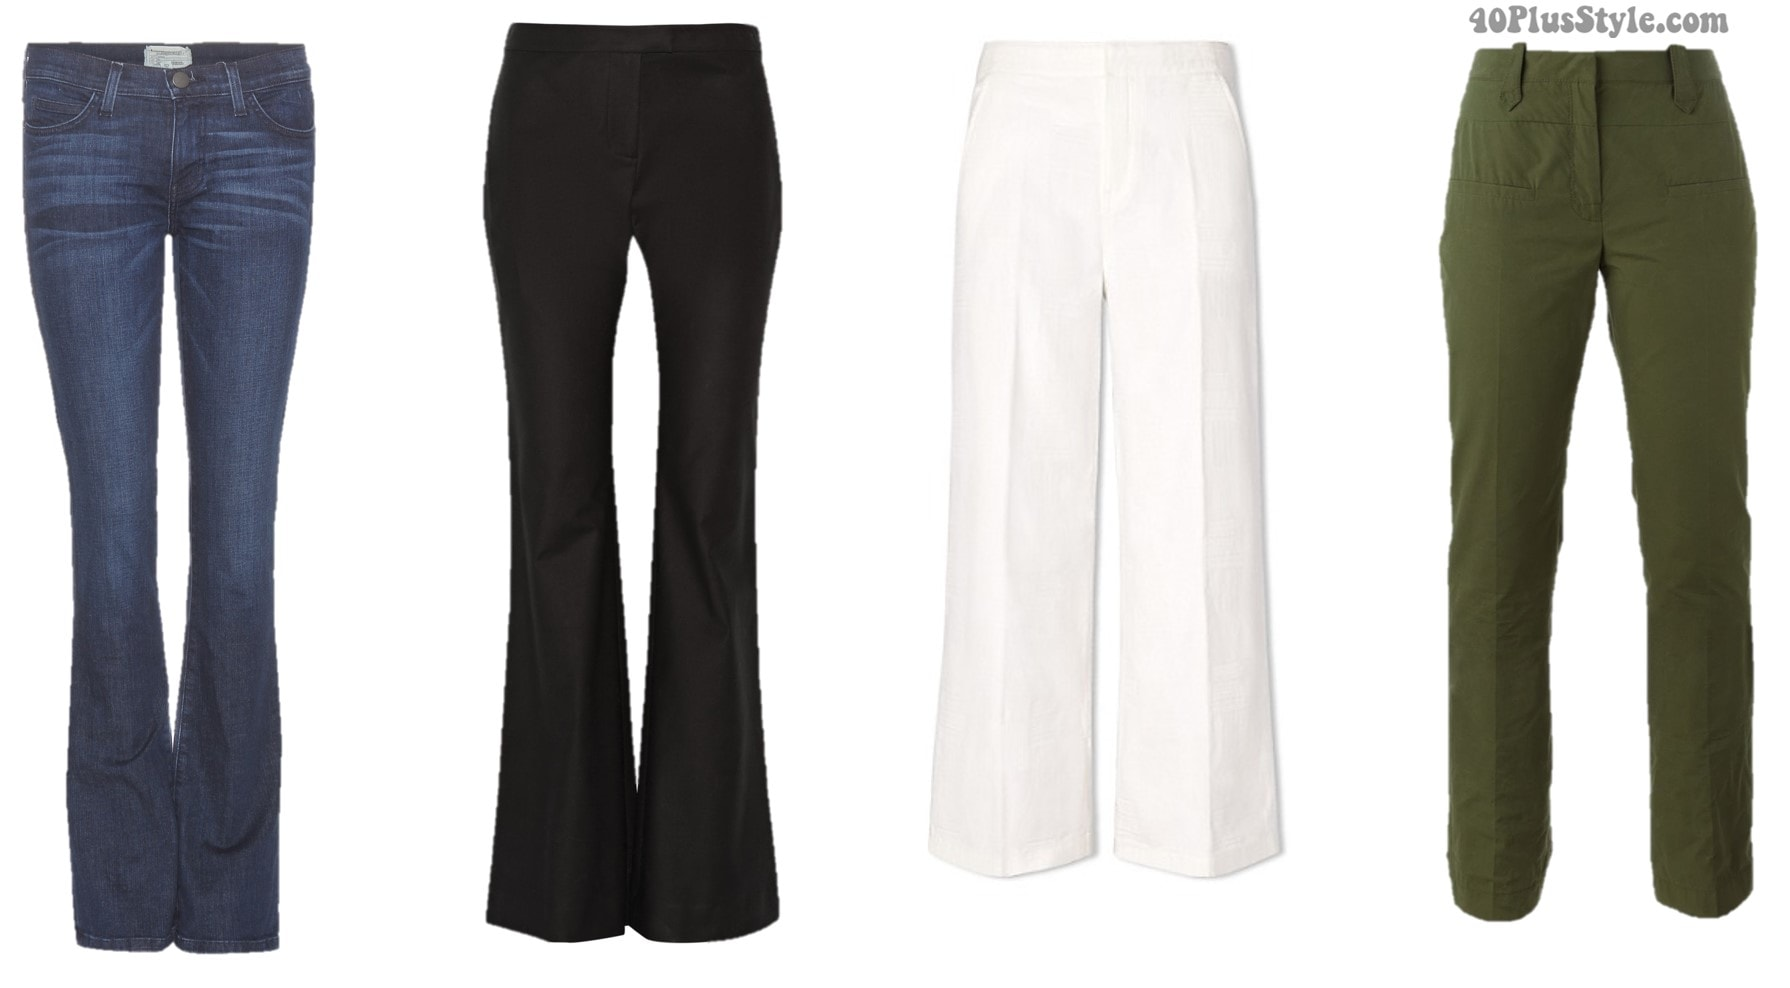 Inverted triangle shape spring pants cropped bootcut   40plusstyle.com